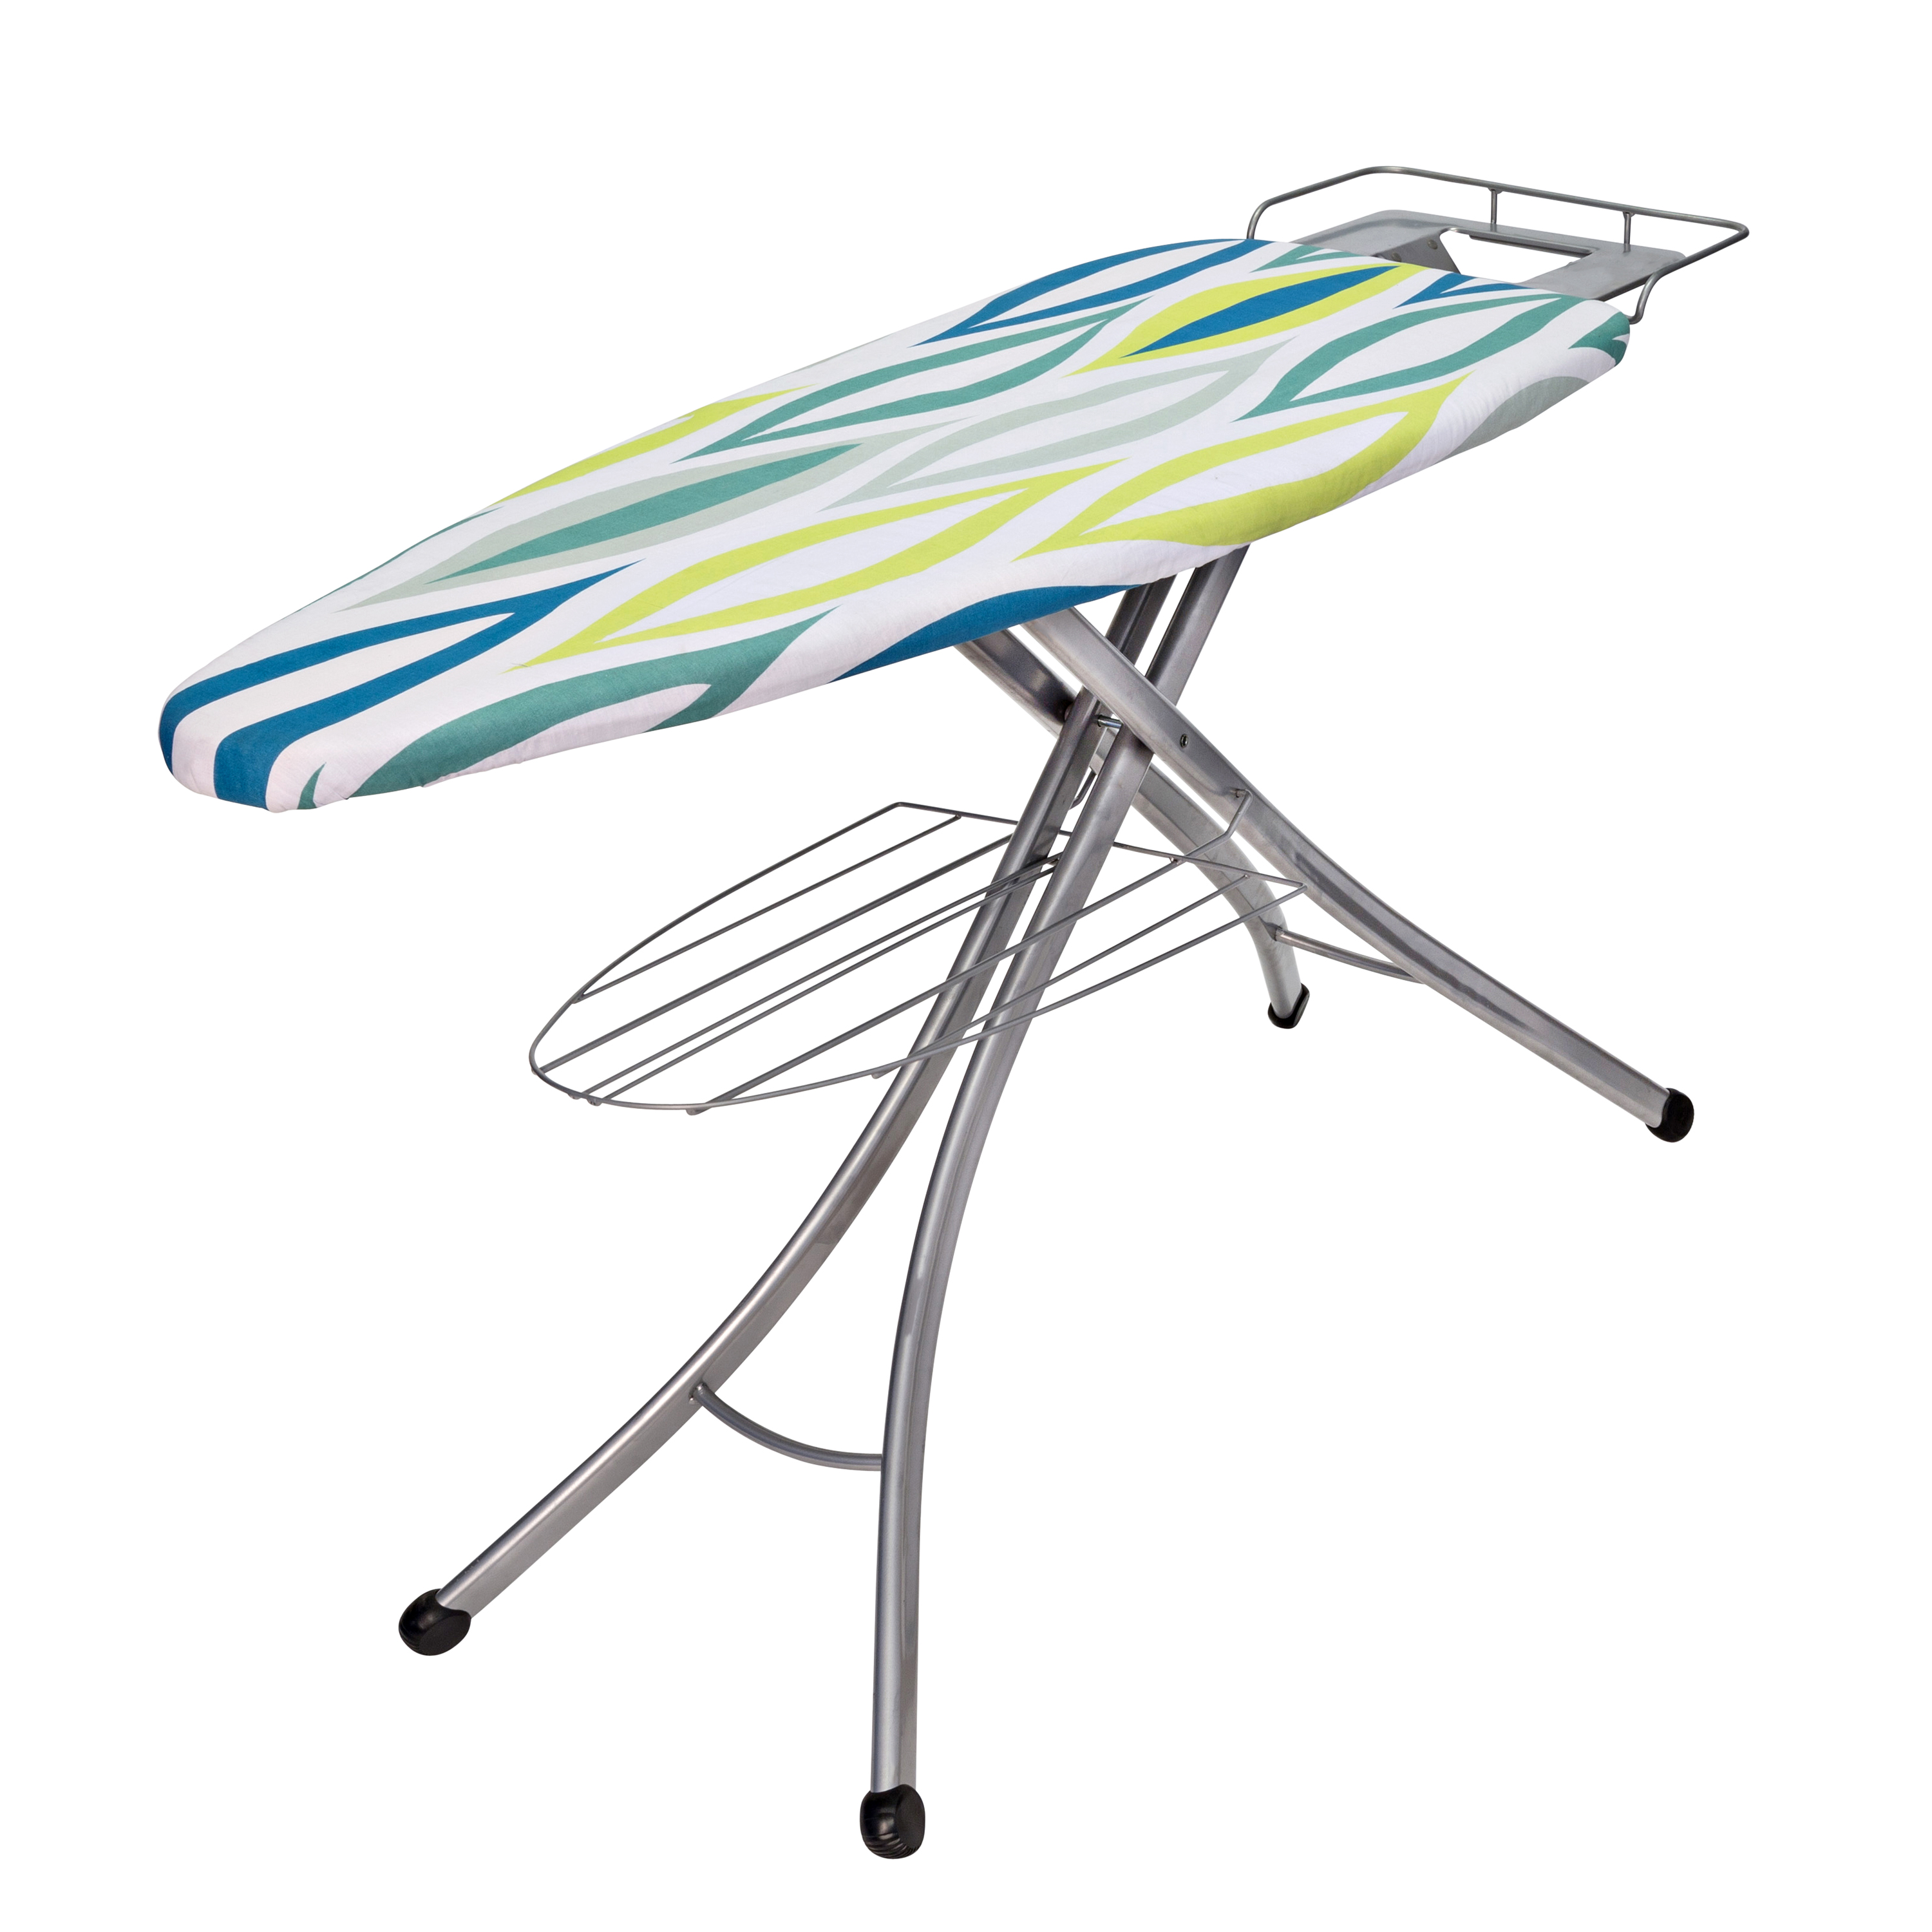 Details About Ironing Board 62x36x18 Iron Rest Builtin Wire Shelf Compact Adjule Height